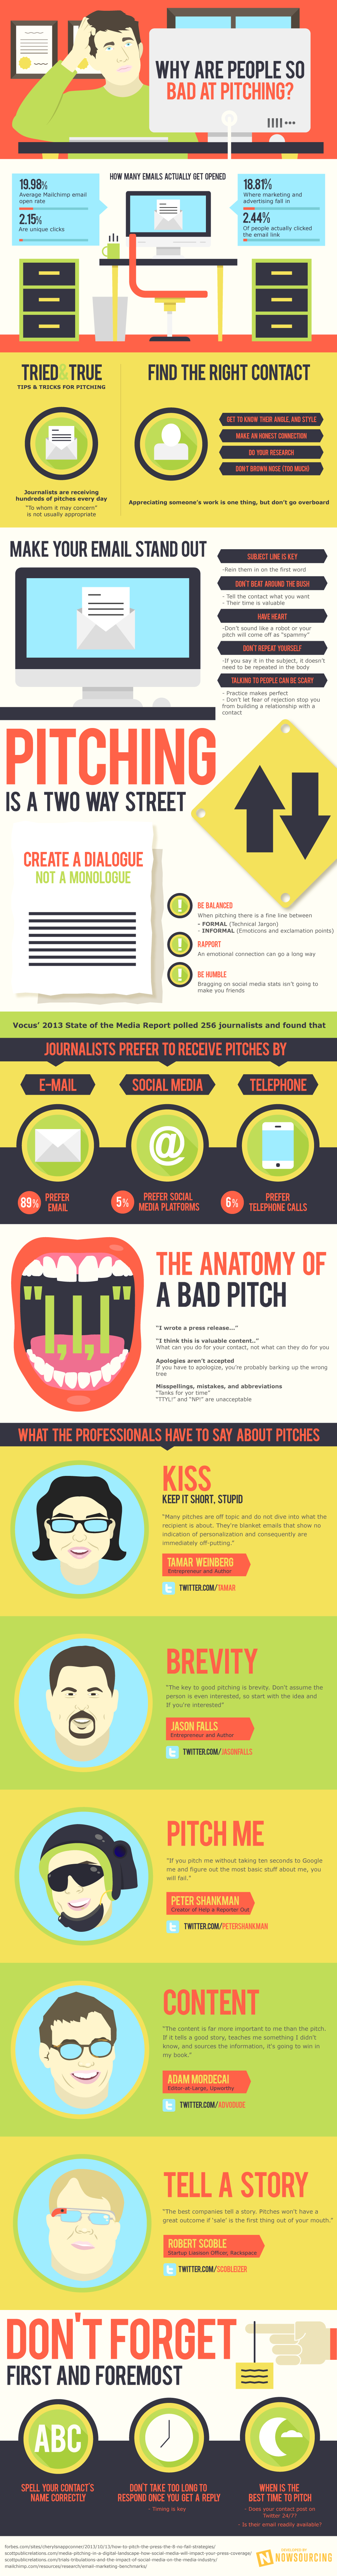 Bad Pitch Establish Connections Infographic